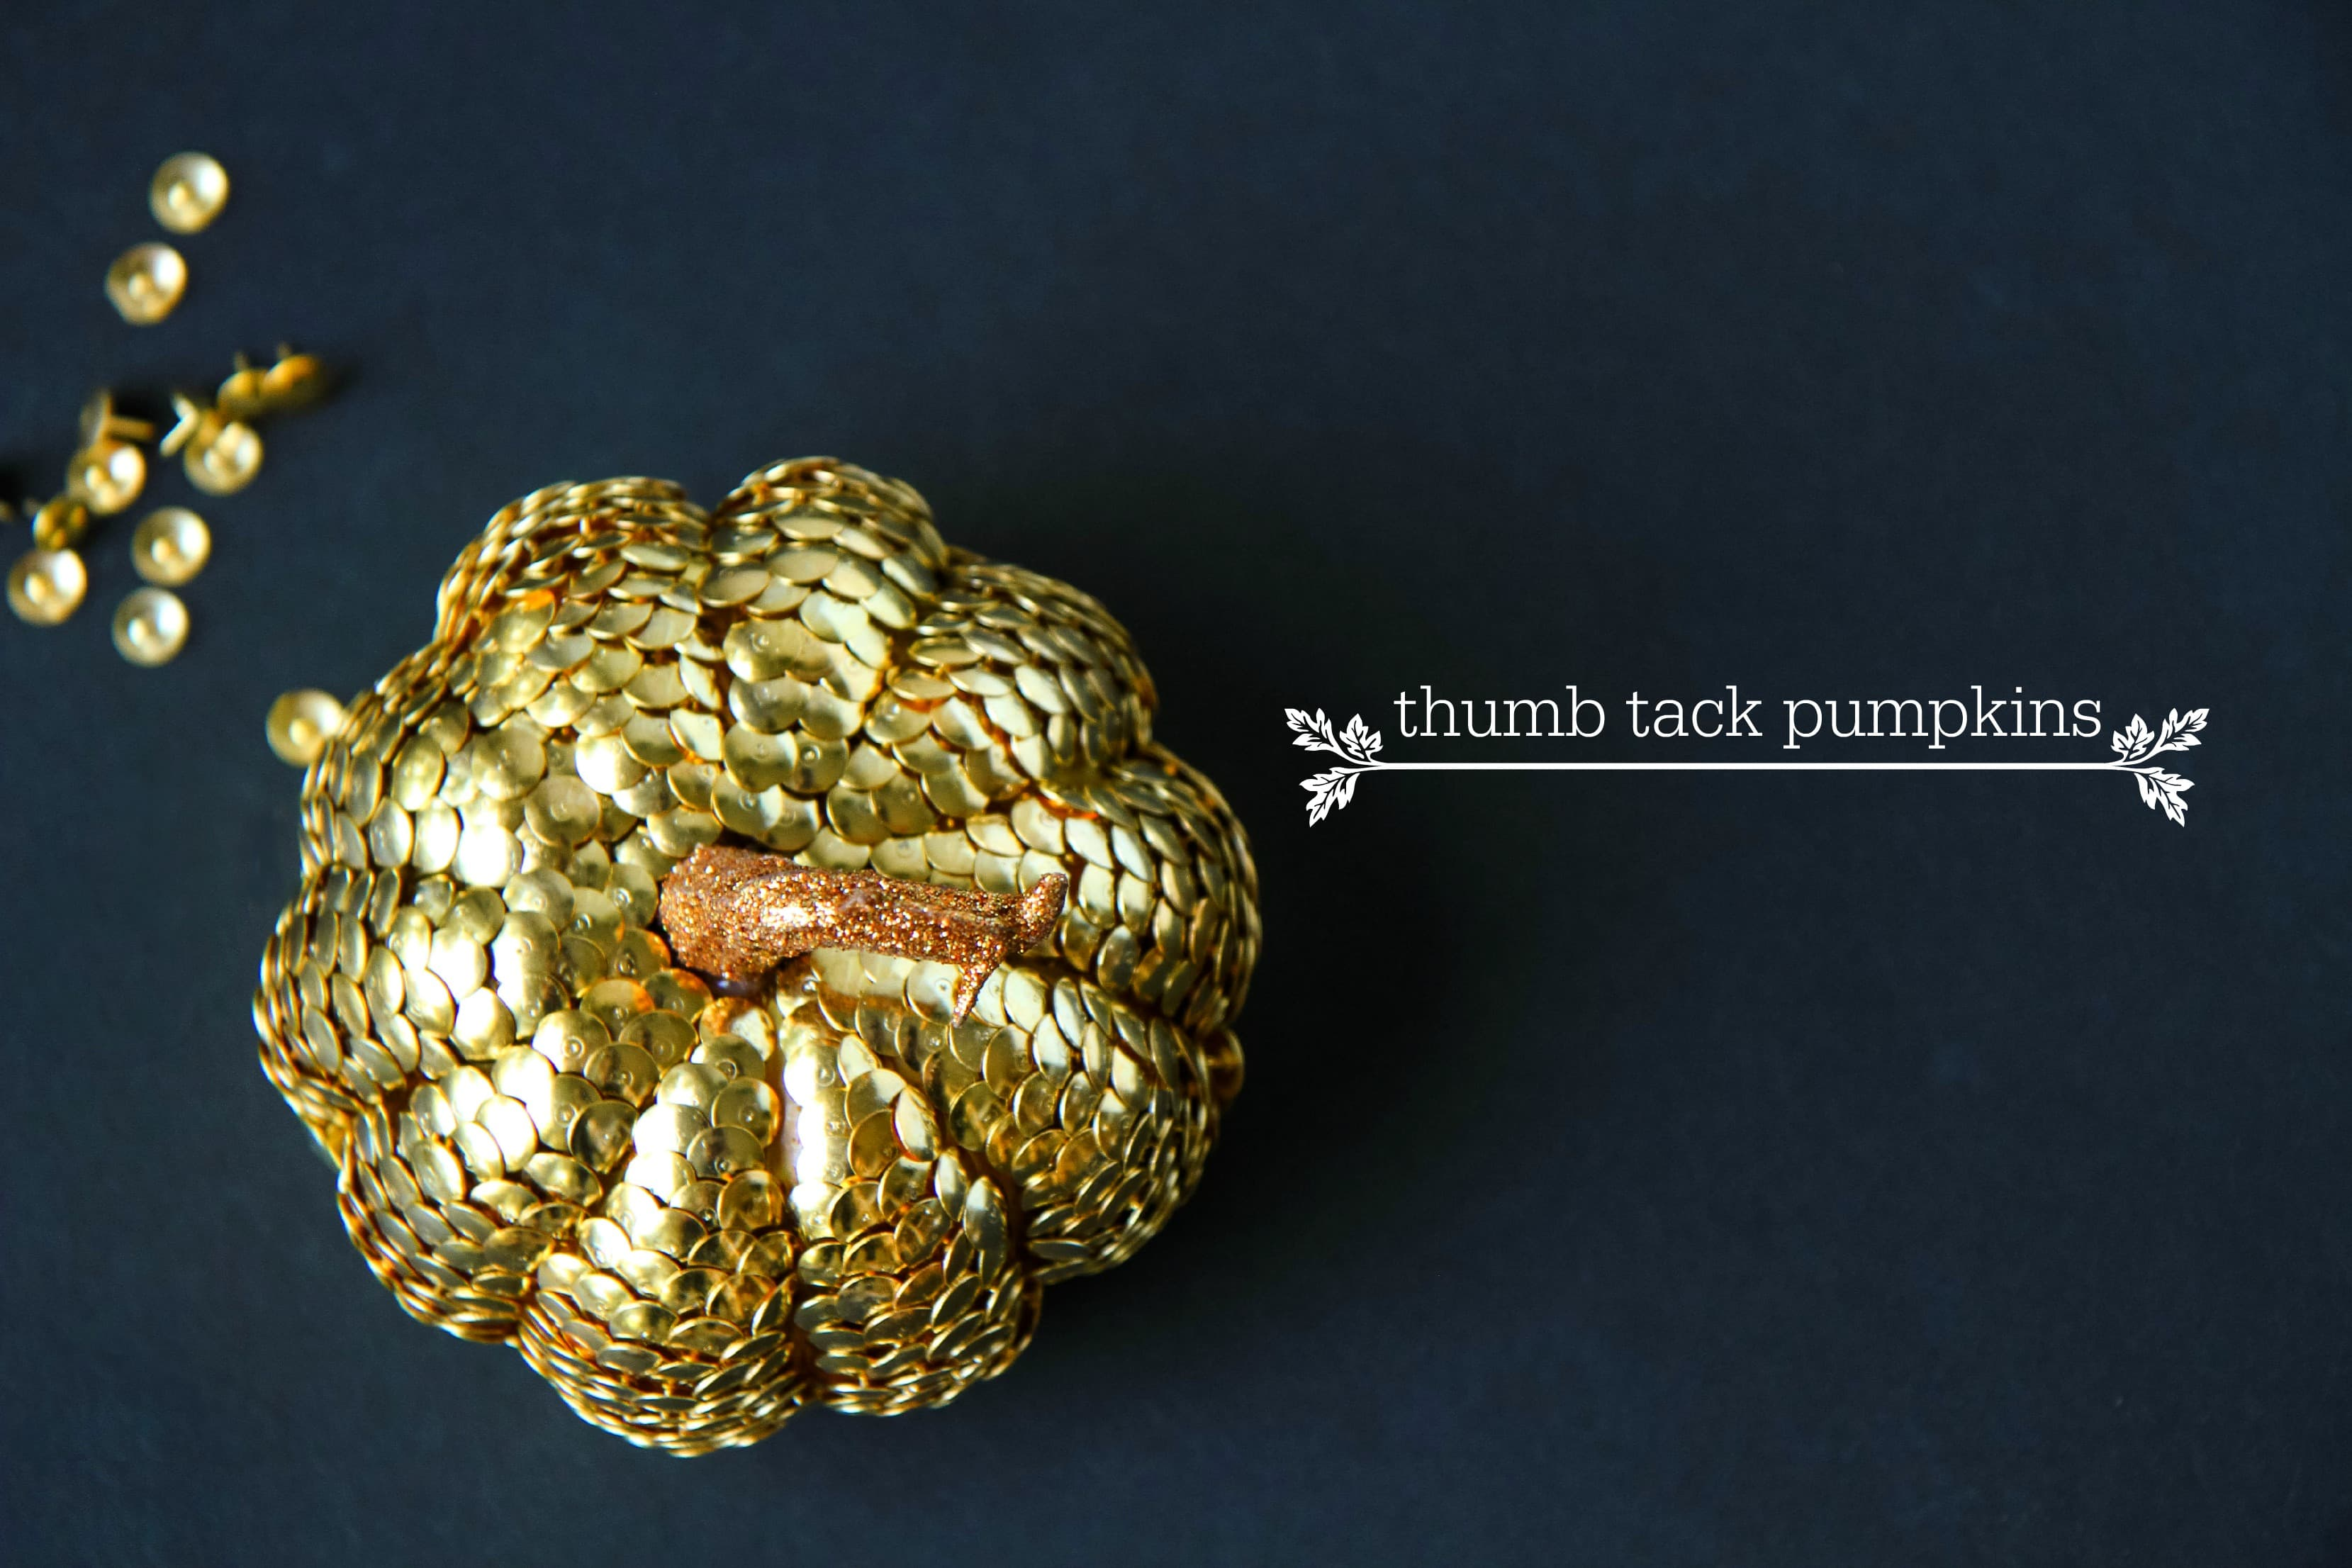 decorative-thumb-tack-pumpkin-tutorial-header